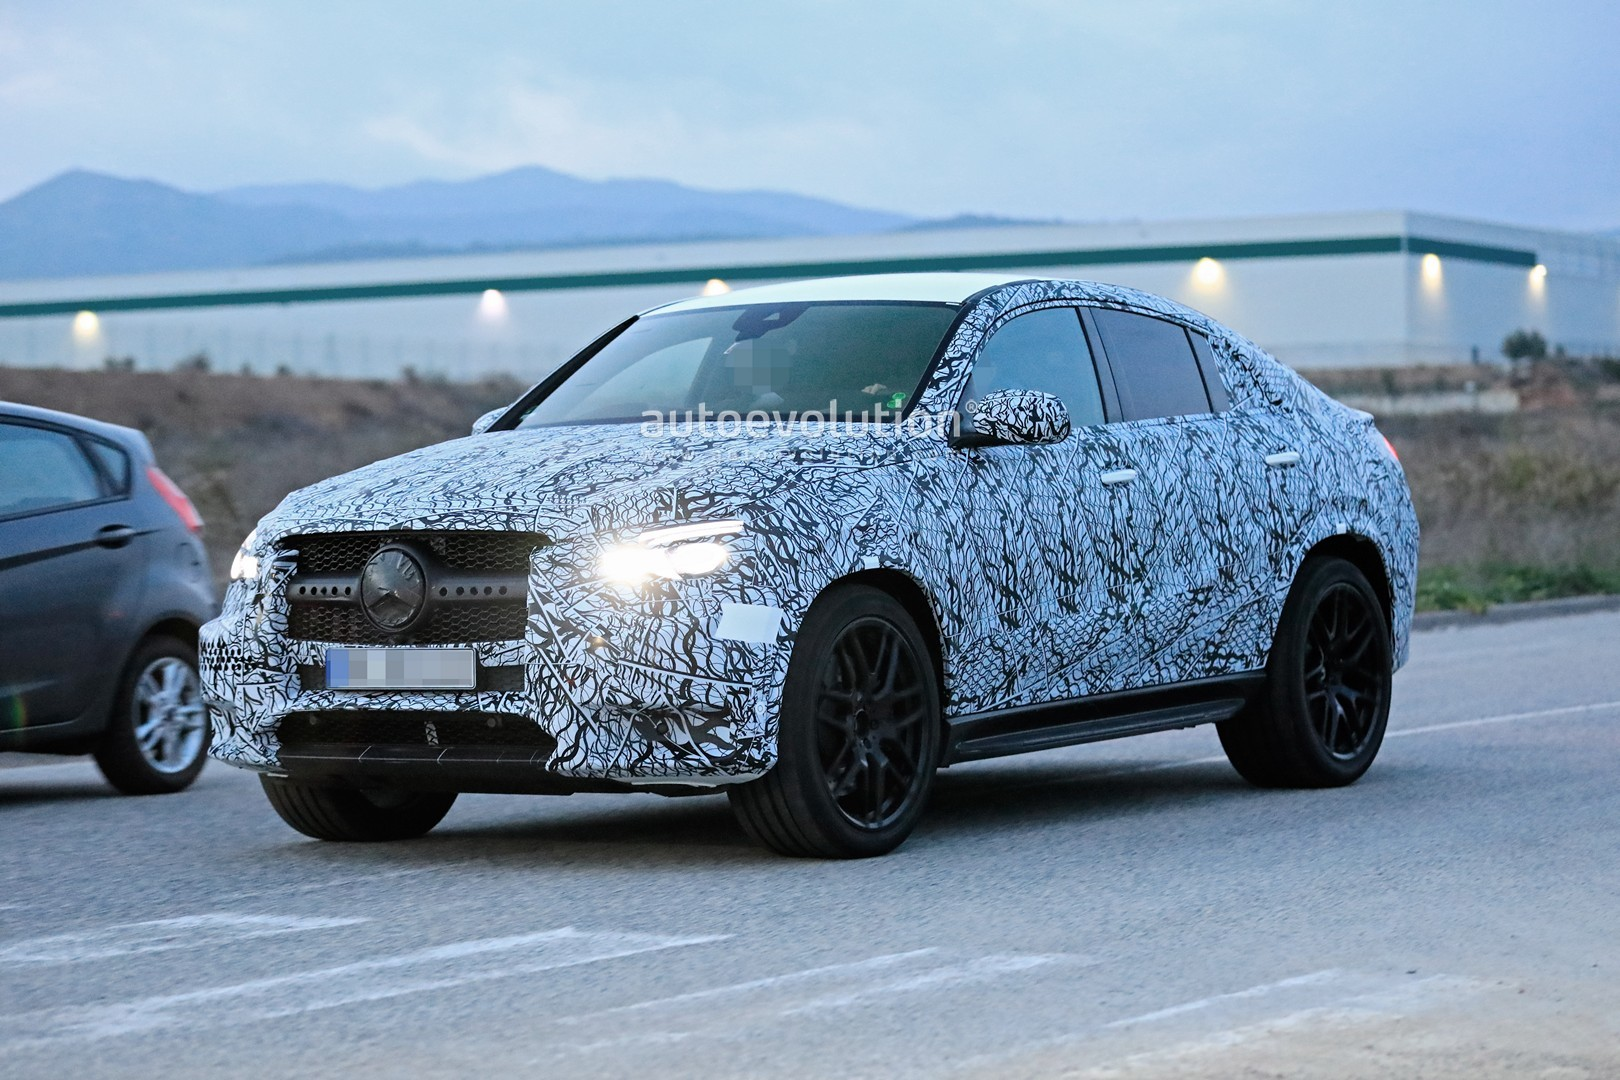 mercedes-a​mg-gle-53-​coupe-make​s-spyshot-​debut-with​-quad-exha​ust-tips_4